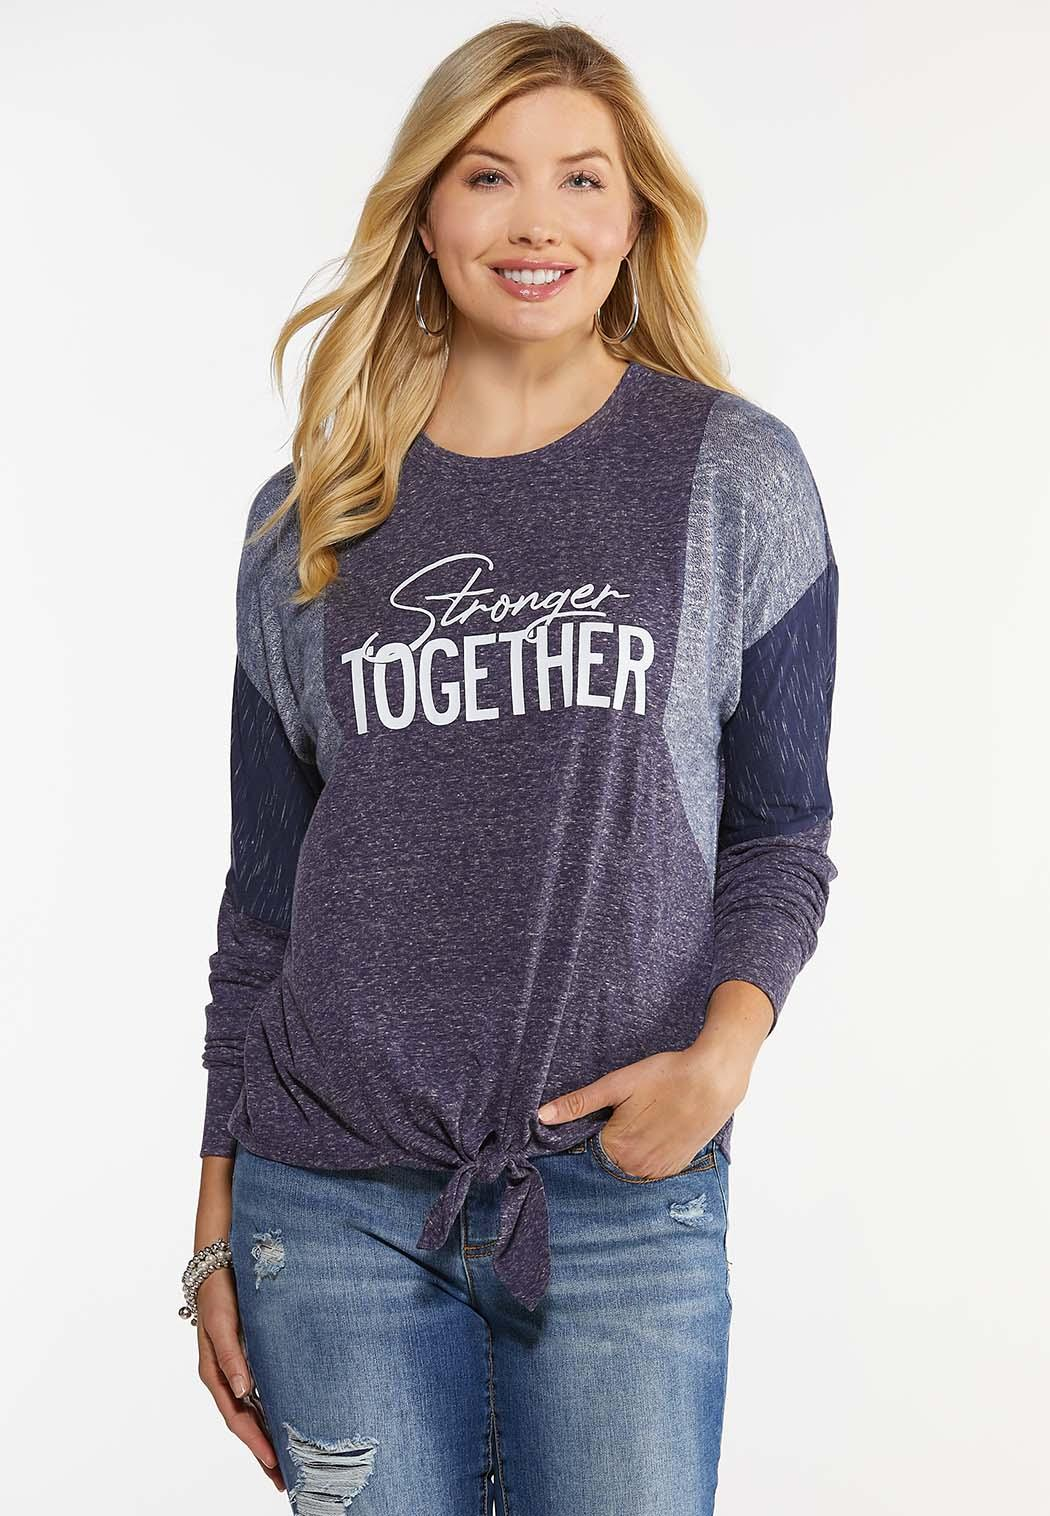 Stronger Together Knotted Top